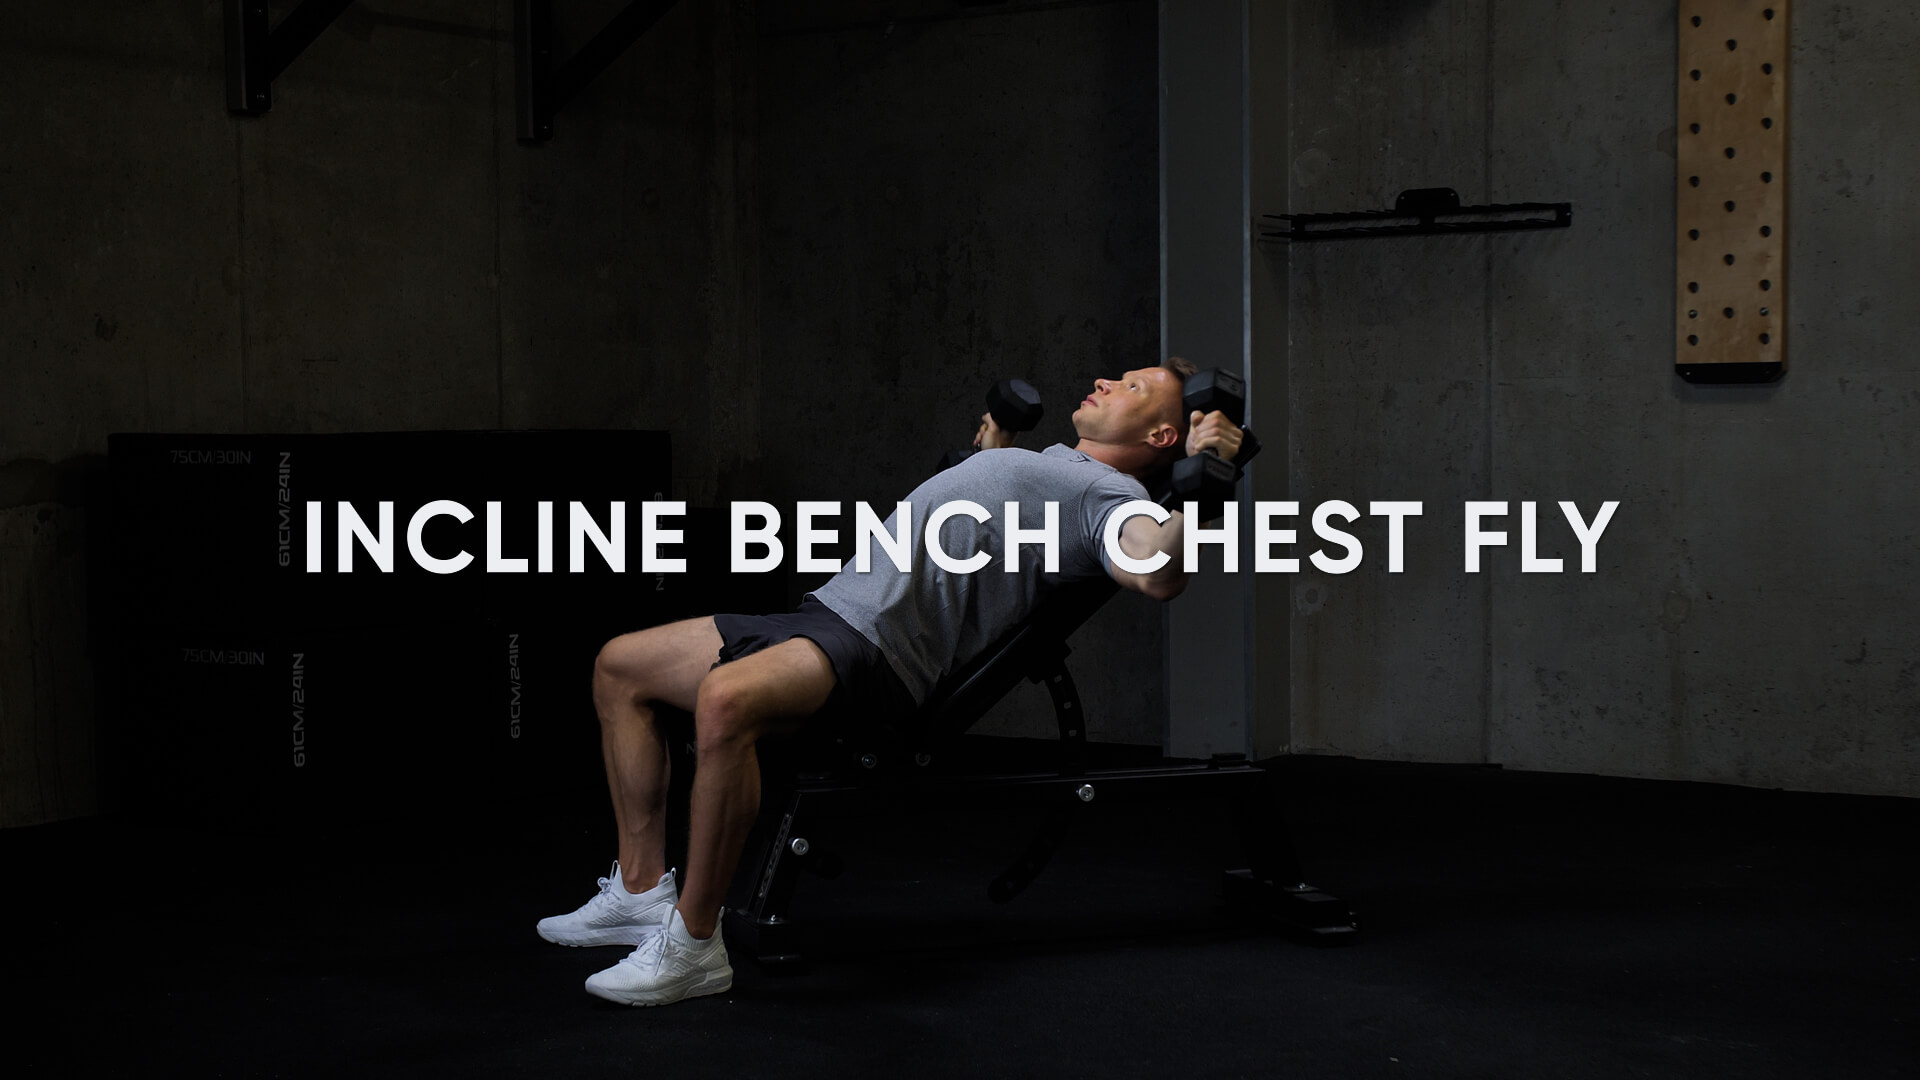 Incline Bench Chest Fly